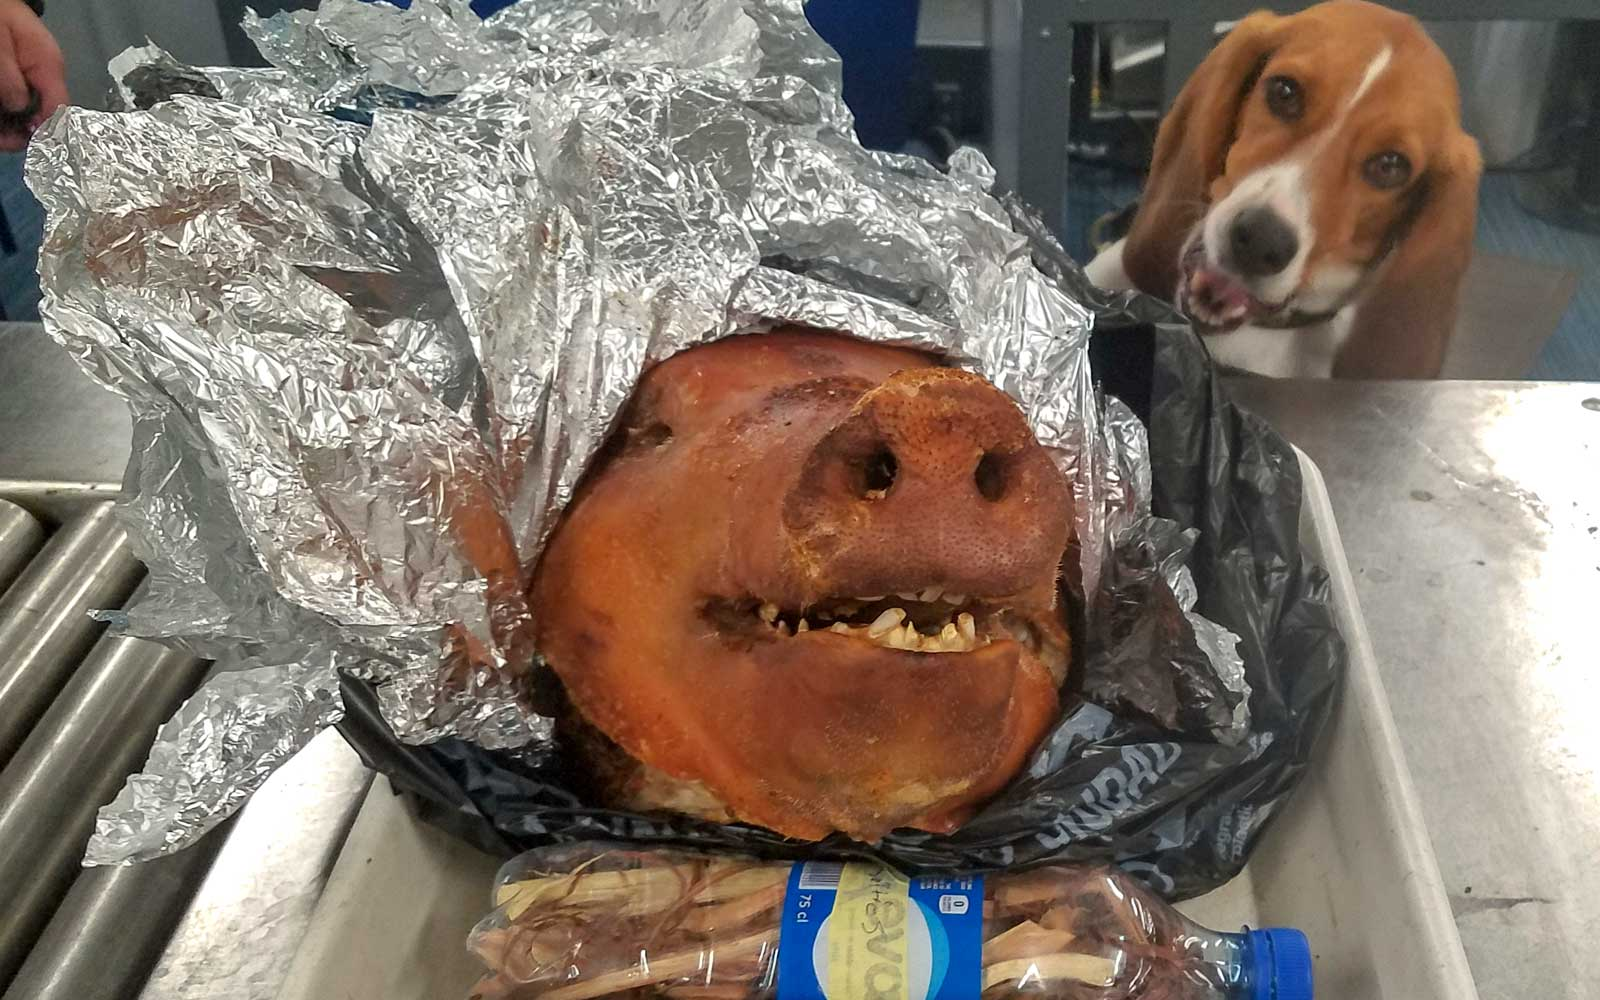 This Very Good U.S. Customs Beagle Sniffed Out an Entire Roast Pig Hidden in Someone's Luggage